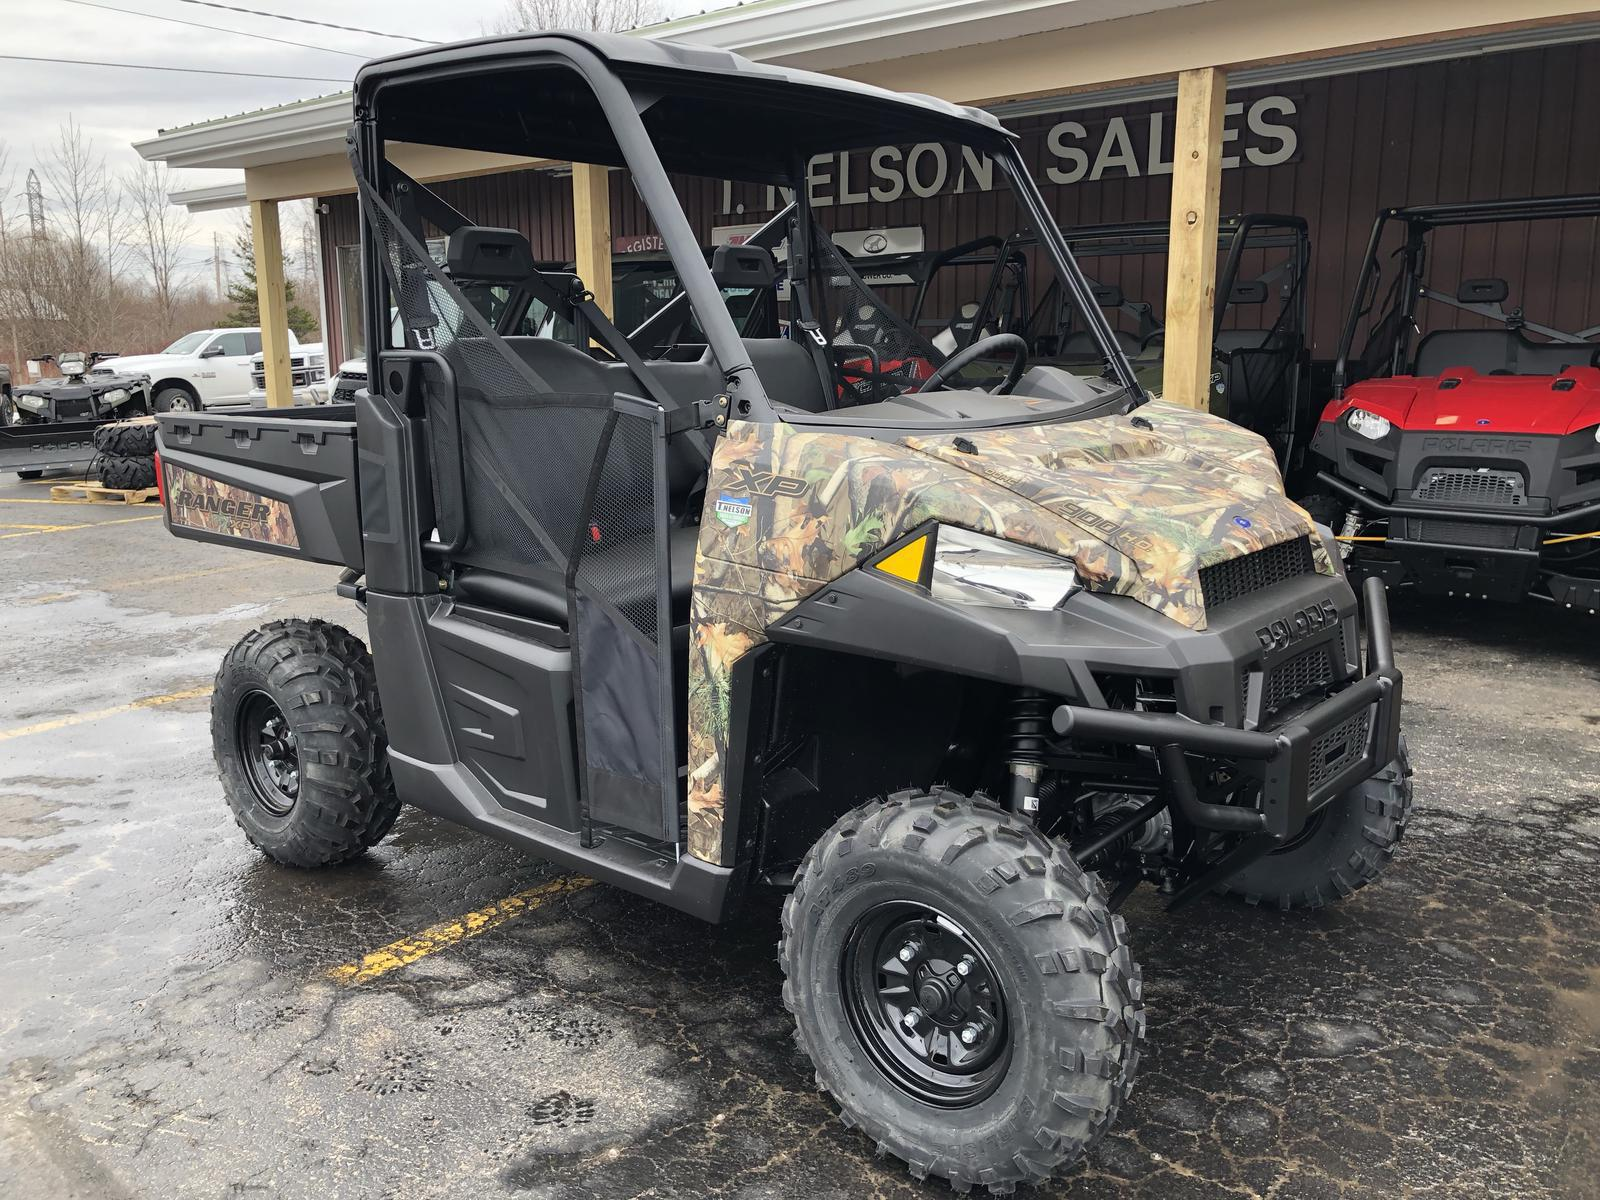 Polaris Ranger Xp 900 >> Polaris Ranger 900 Accessories 2019 Polaris Ranger Xp 900